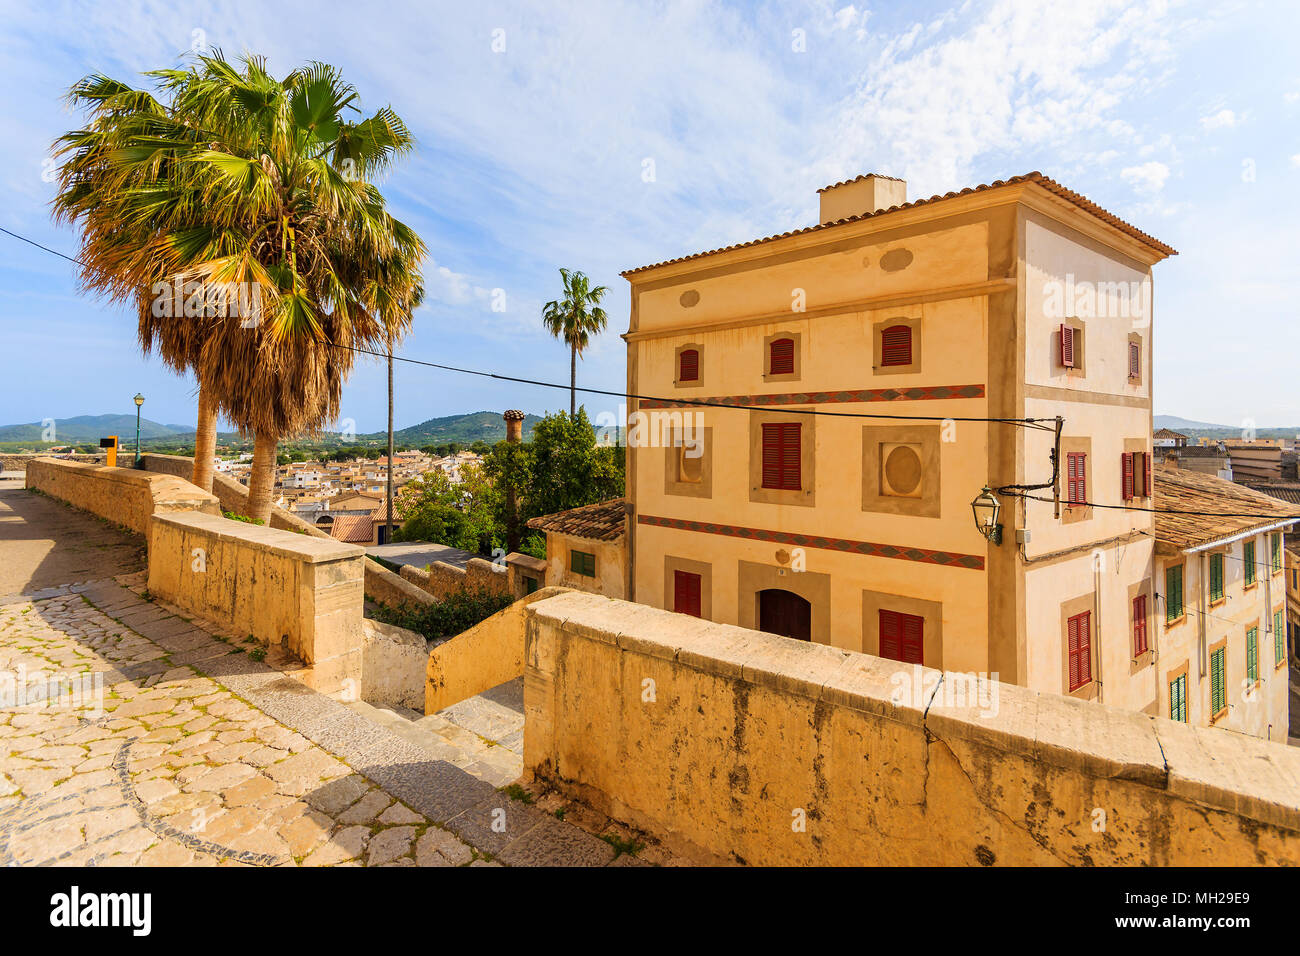 Street with typical beautiful house in historic Arta town, Majorca island, Spain - Stock Image